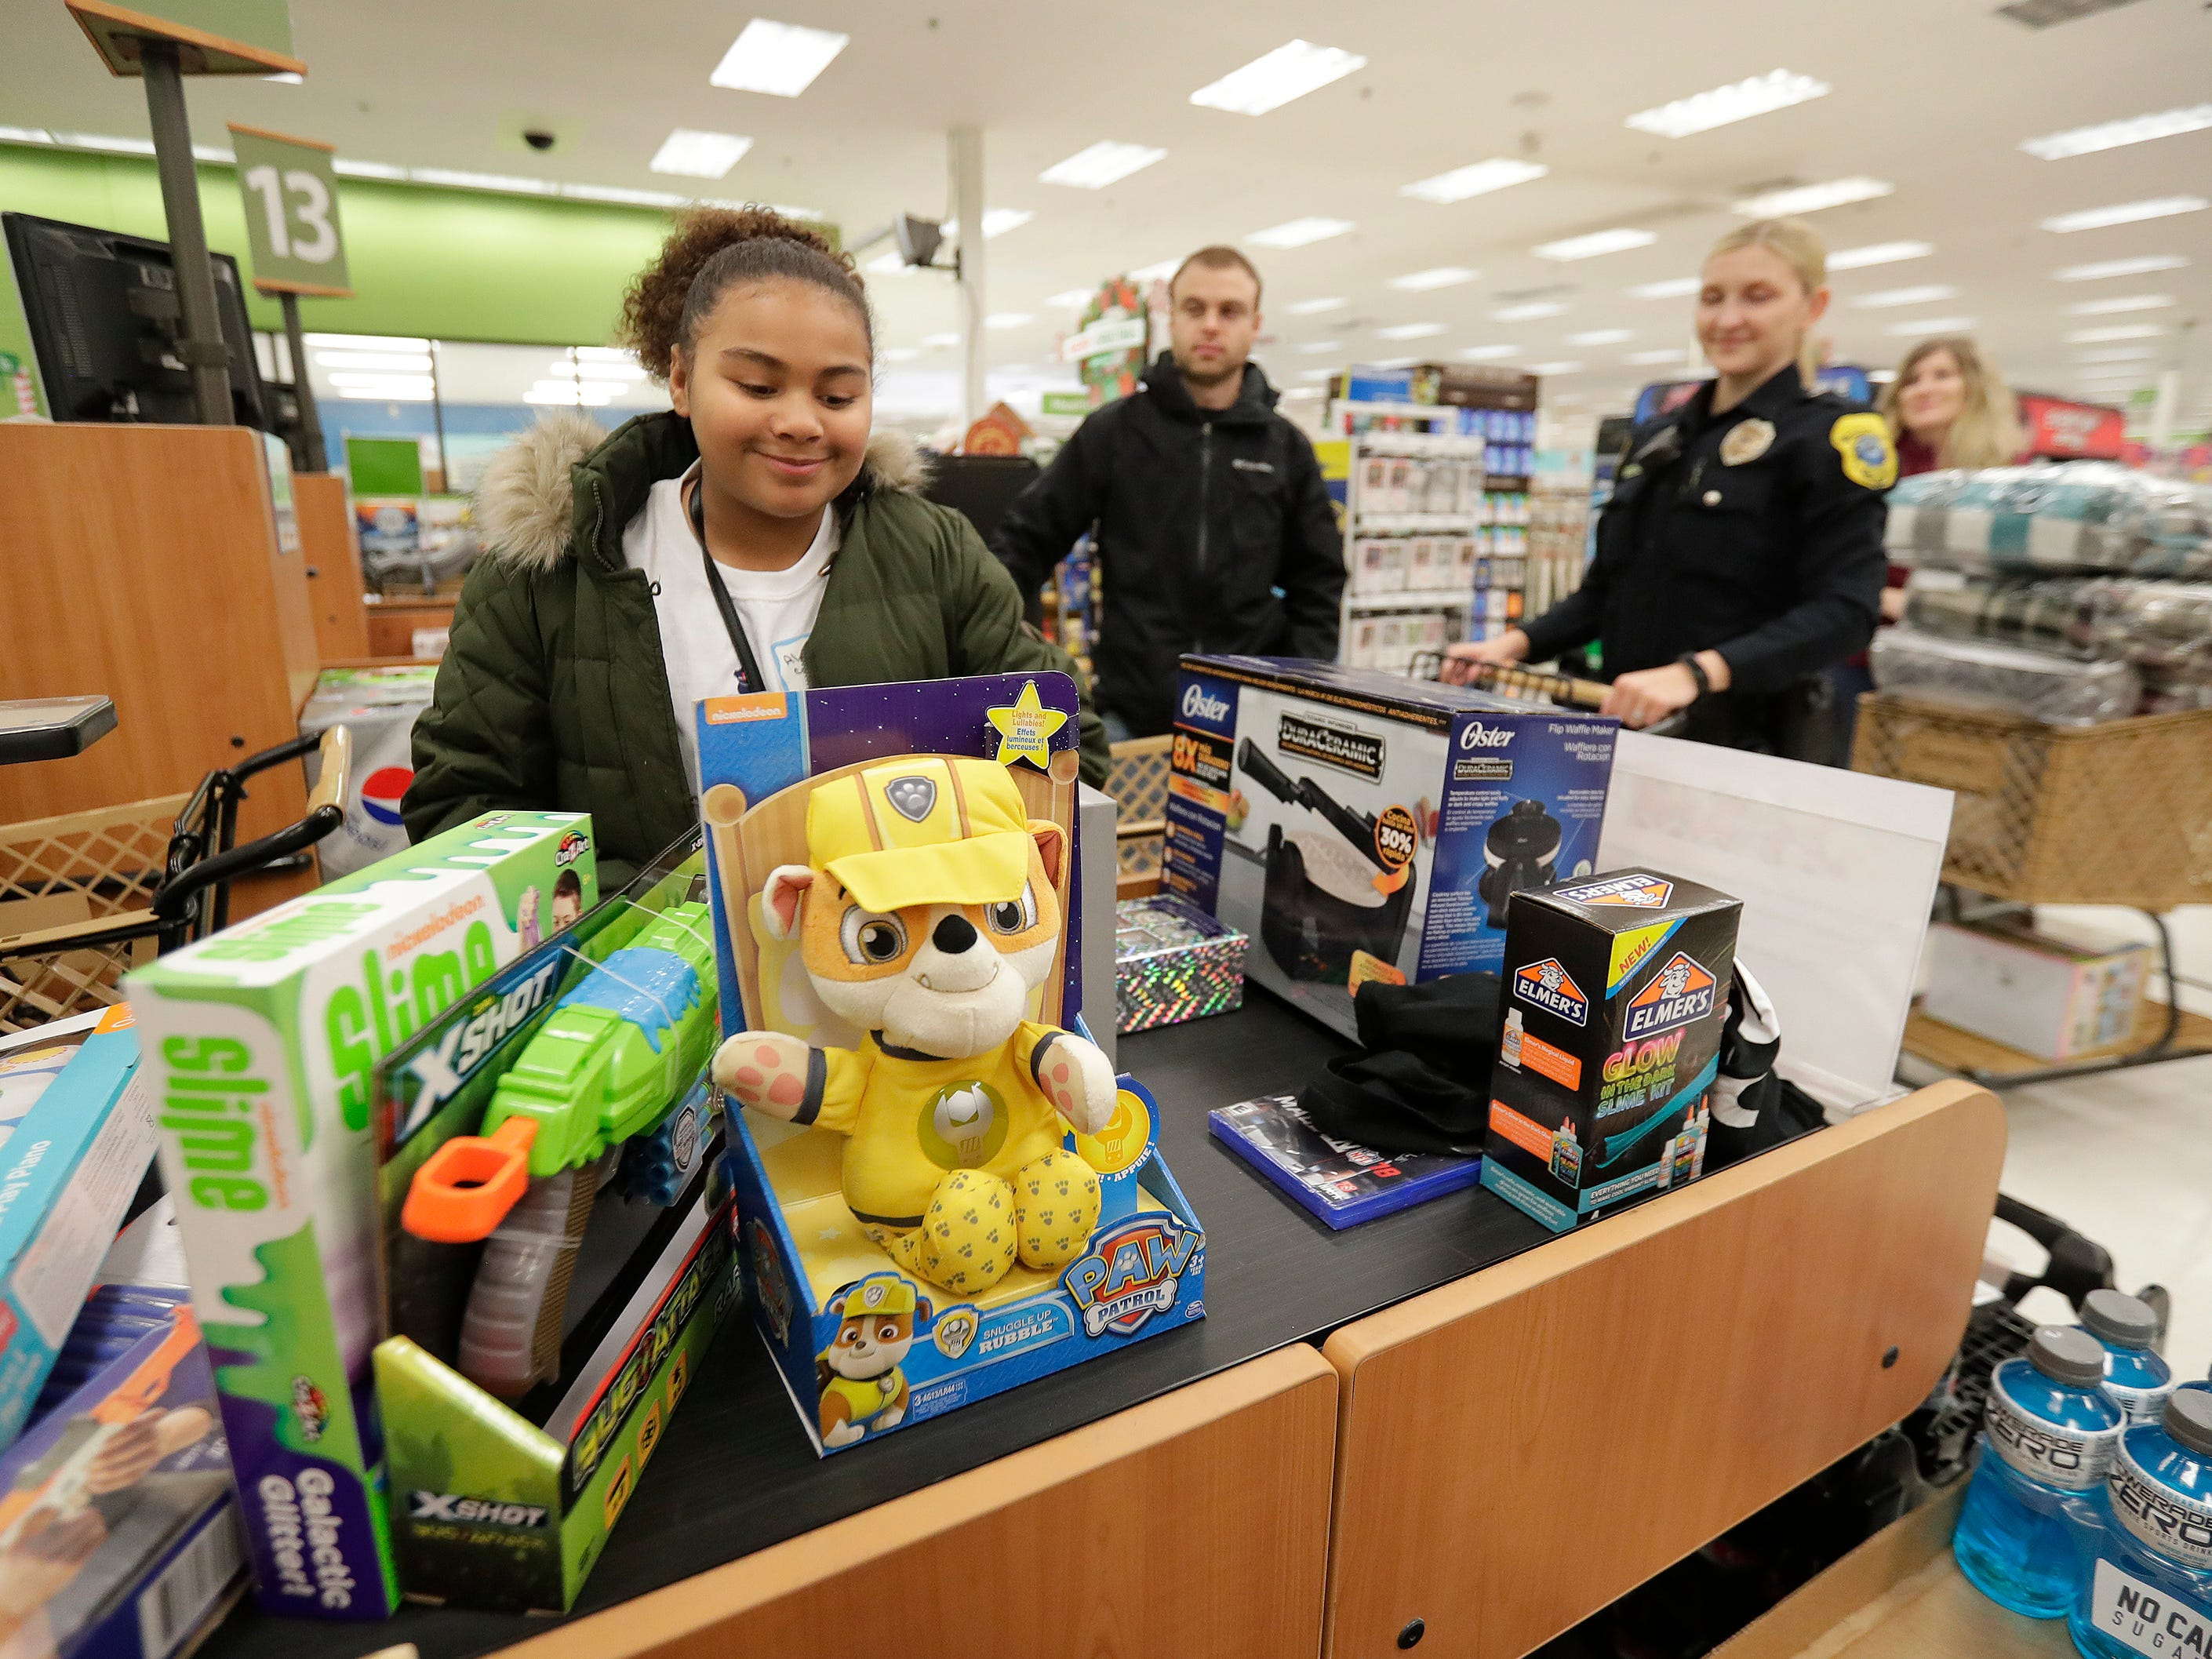 Green Bay Police Department Officers purchase gifts selected with their Shop with A Cop program money at Shopko on East Mason Street December 8, 2018 in Green Bay, Wis.